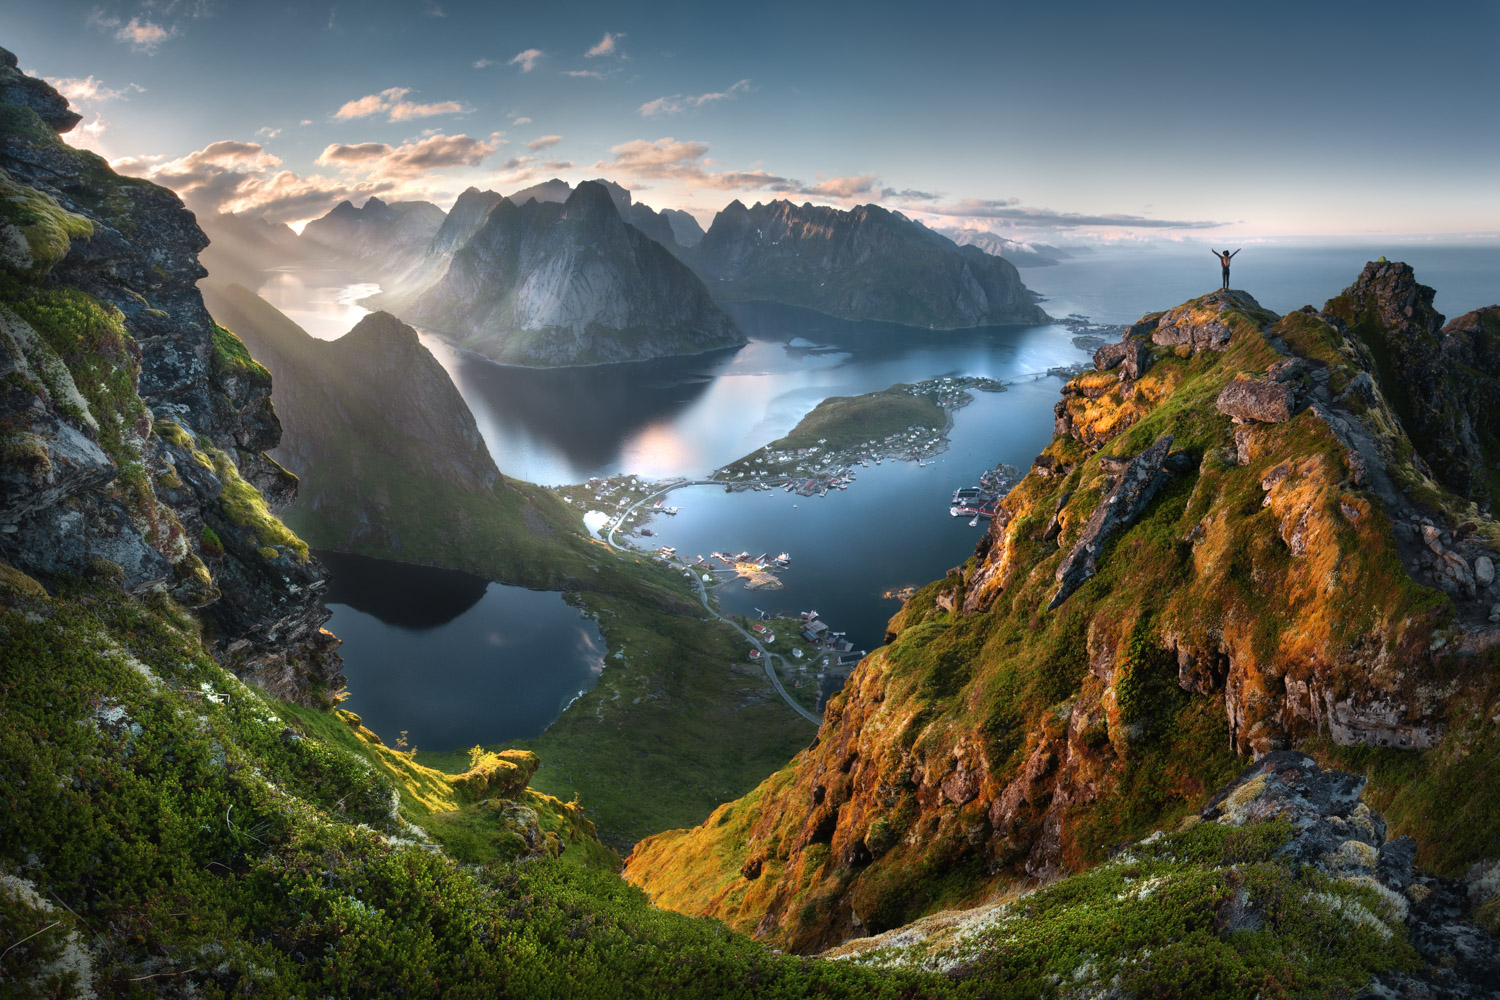 norway_lofoten_tomas_havel_8.jpg